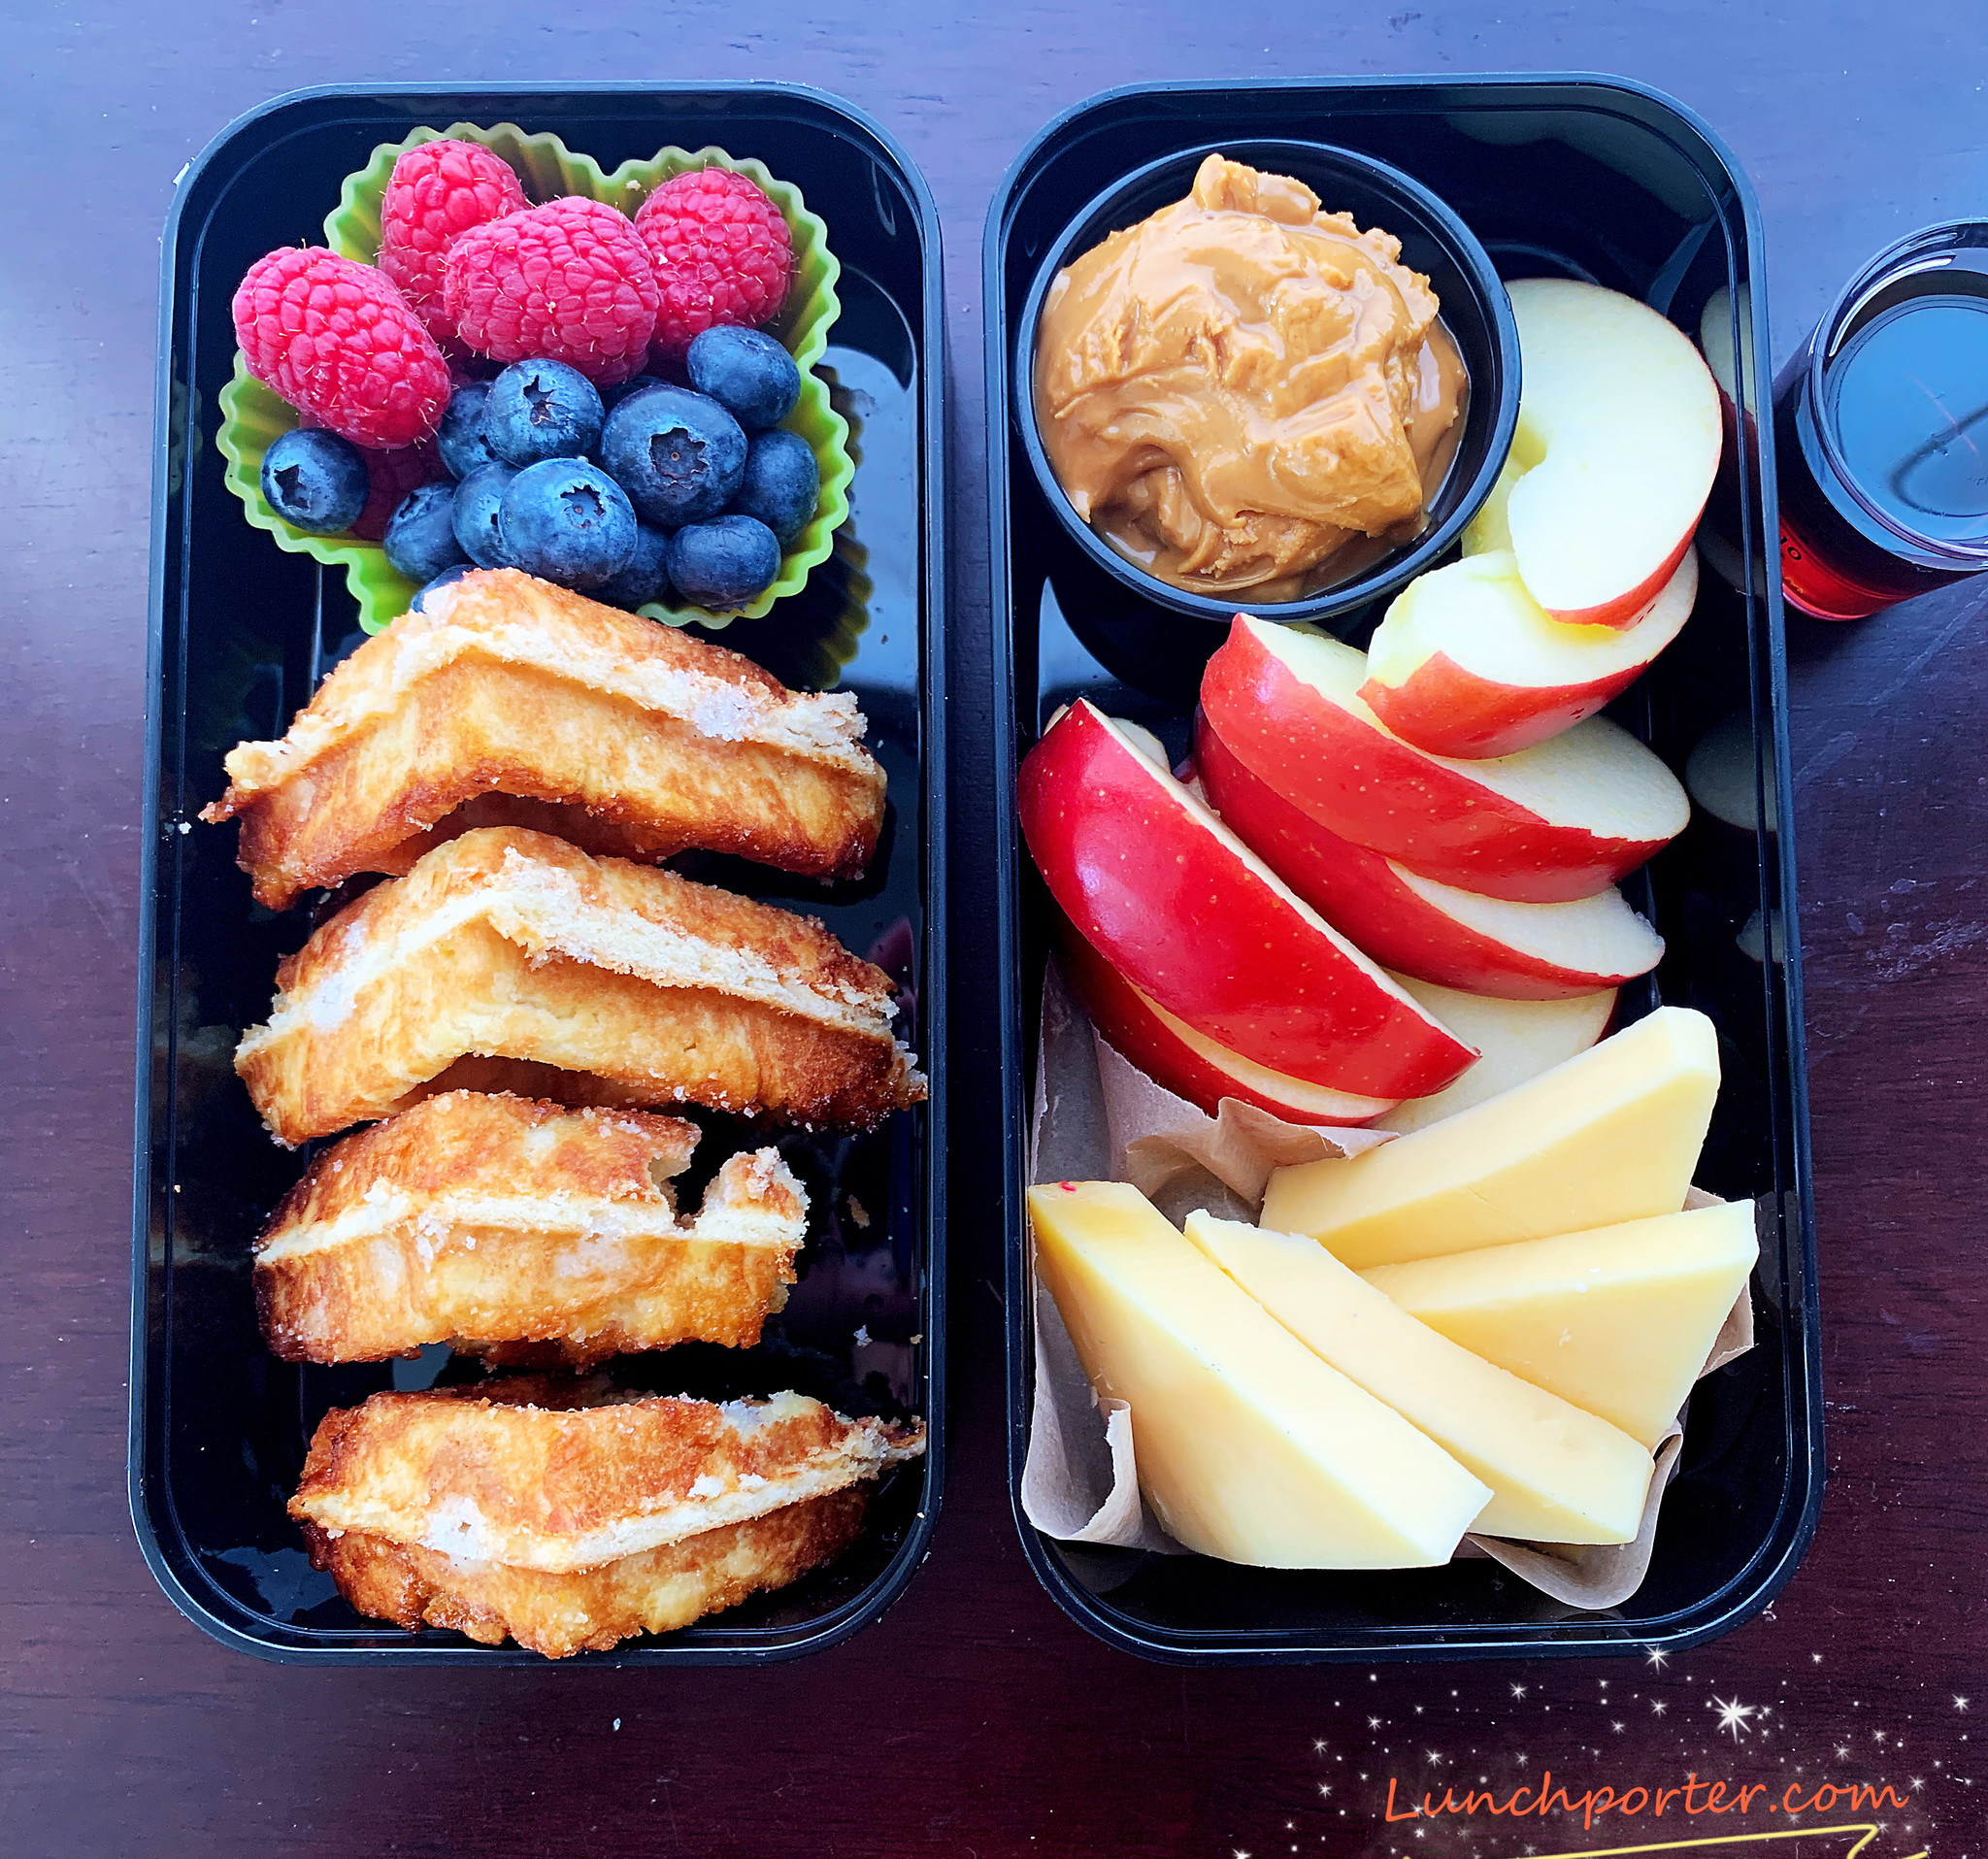 3 Ideas to pack your bento box for breakfast on-the-go